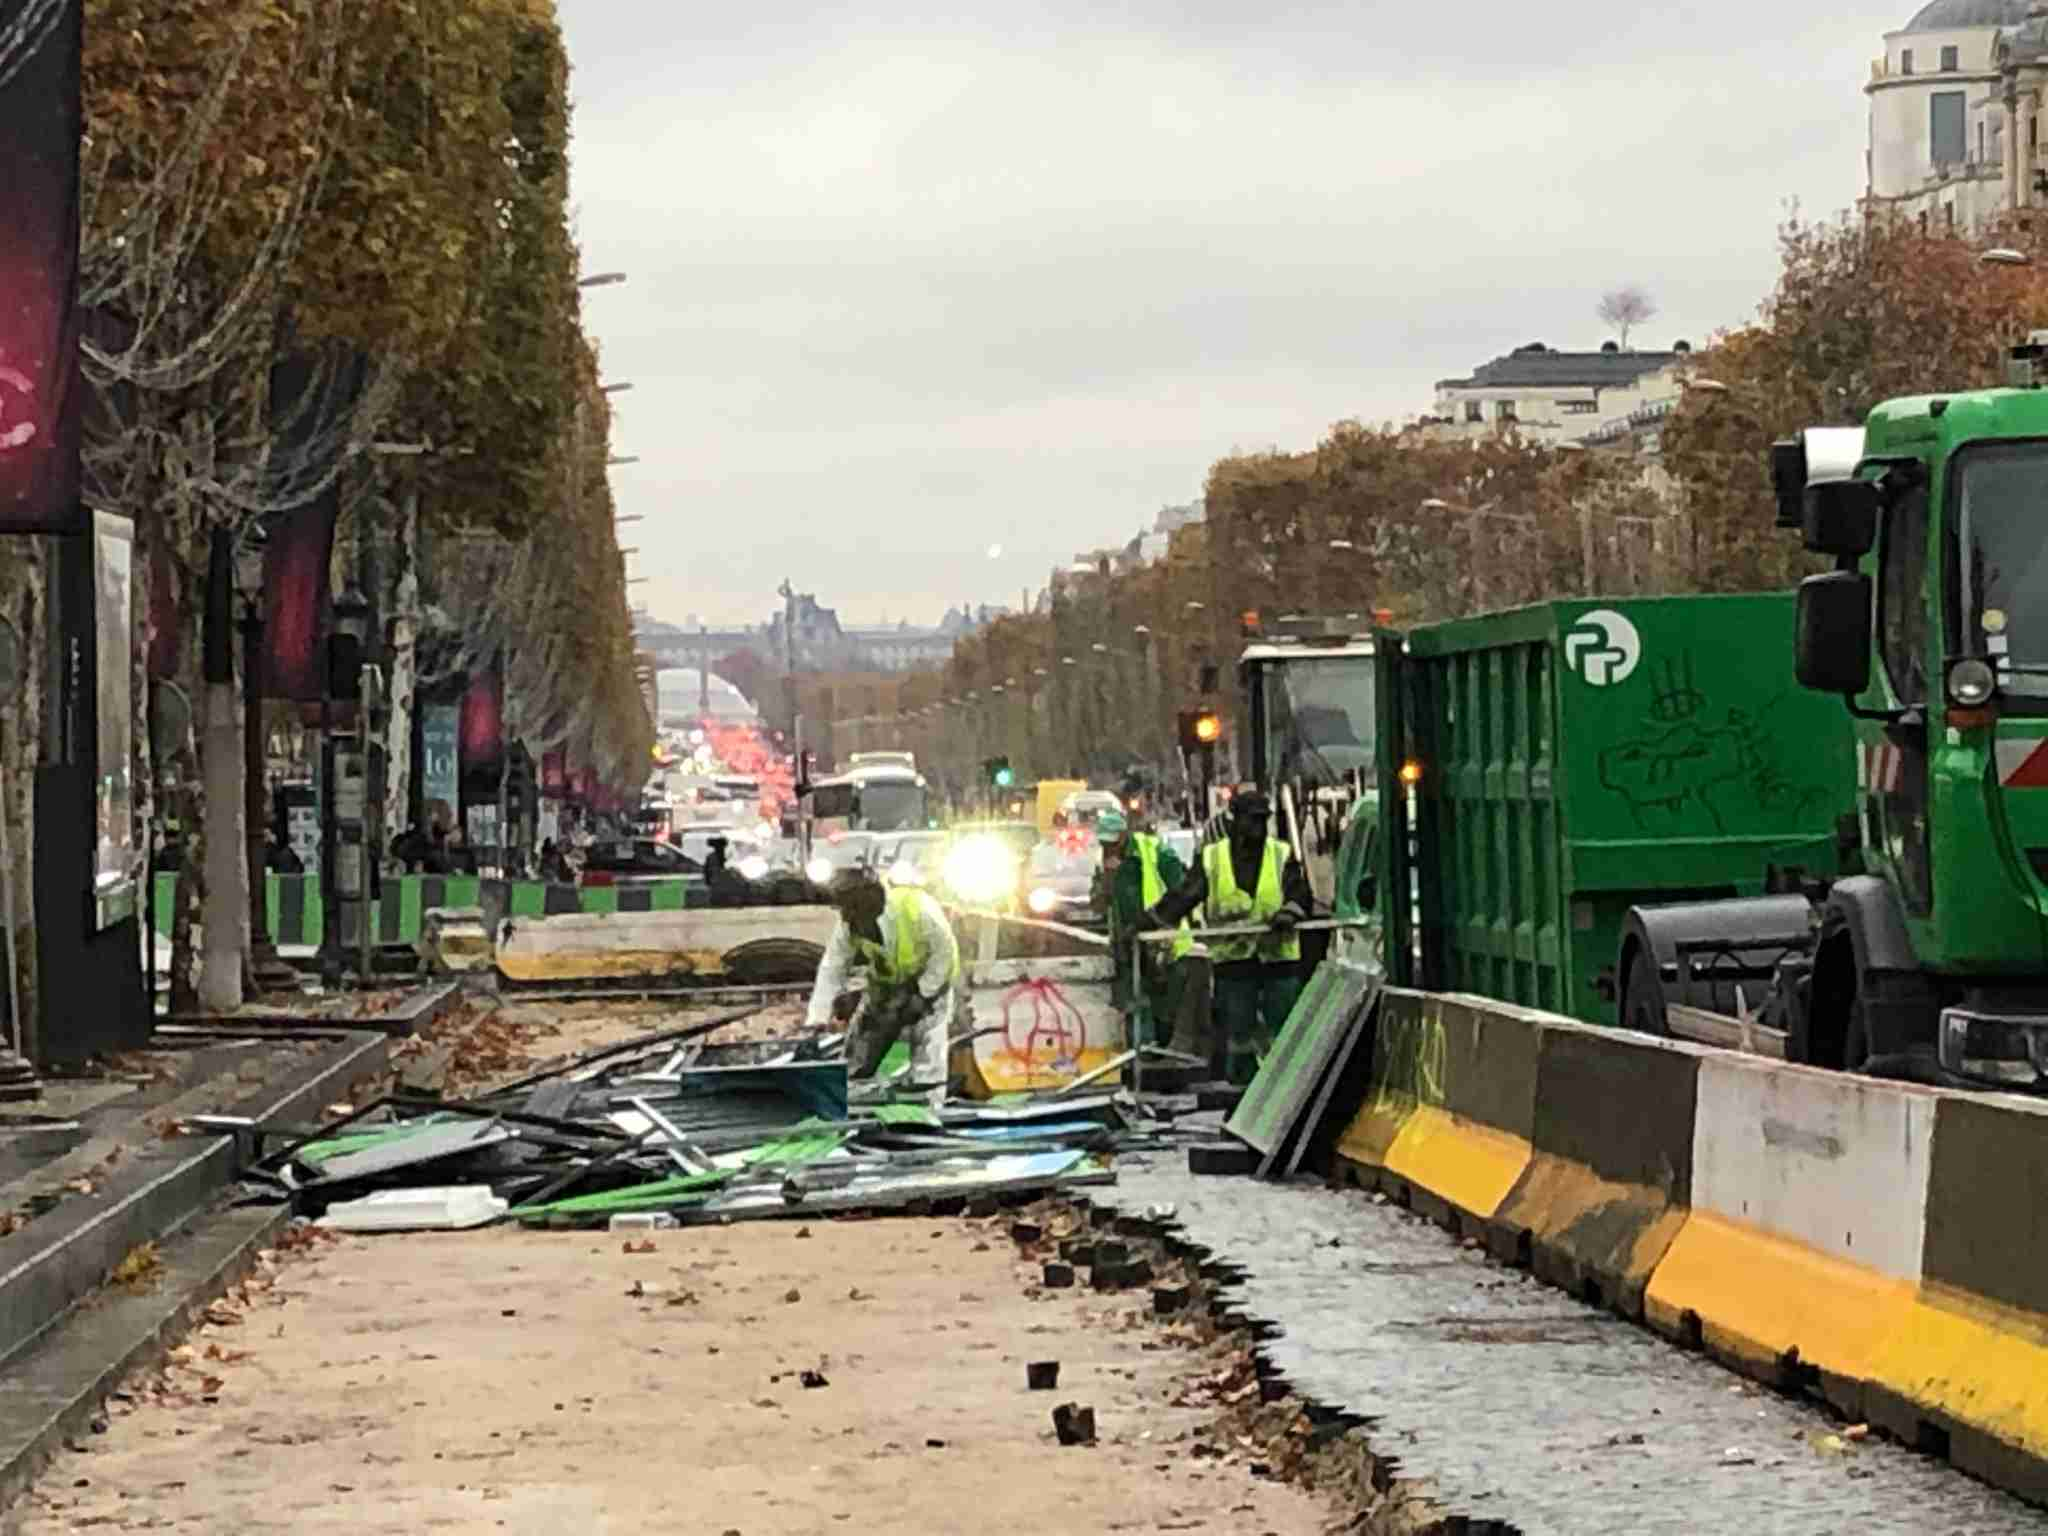 Debris and barricades are removed from the iconic Paris avenue (Image via Edward Pizazrello)